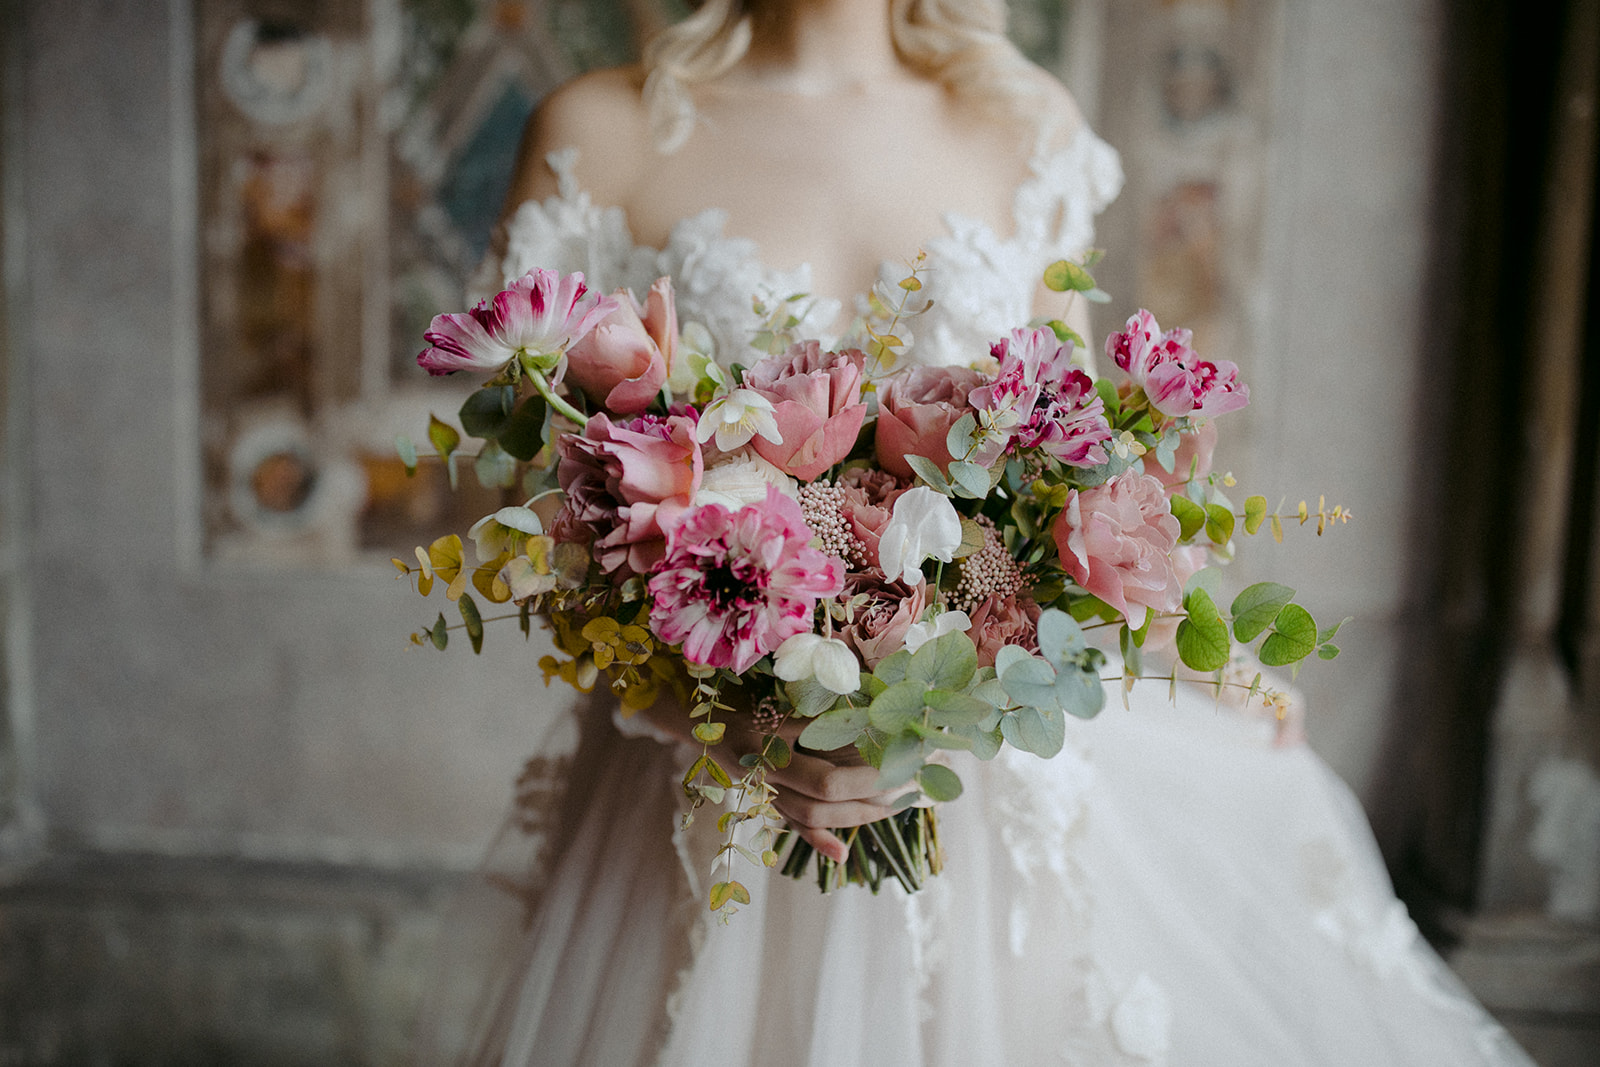 Bride holding bouquet of flowers for wedding photoshoot